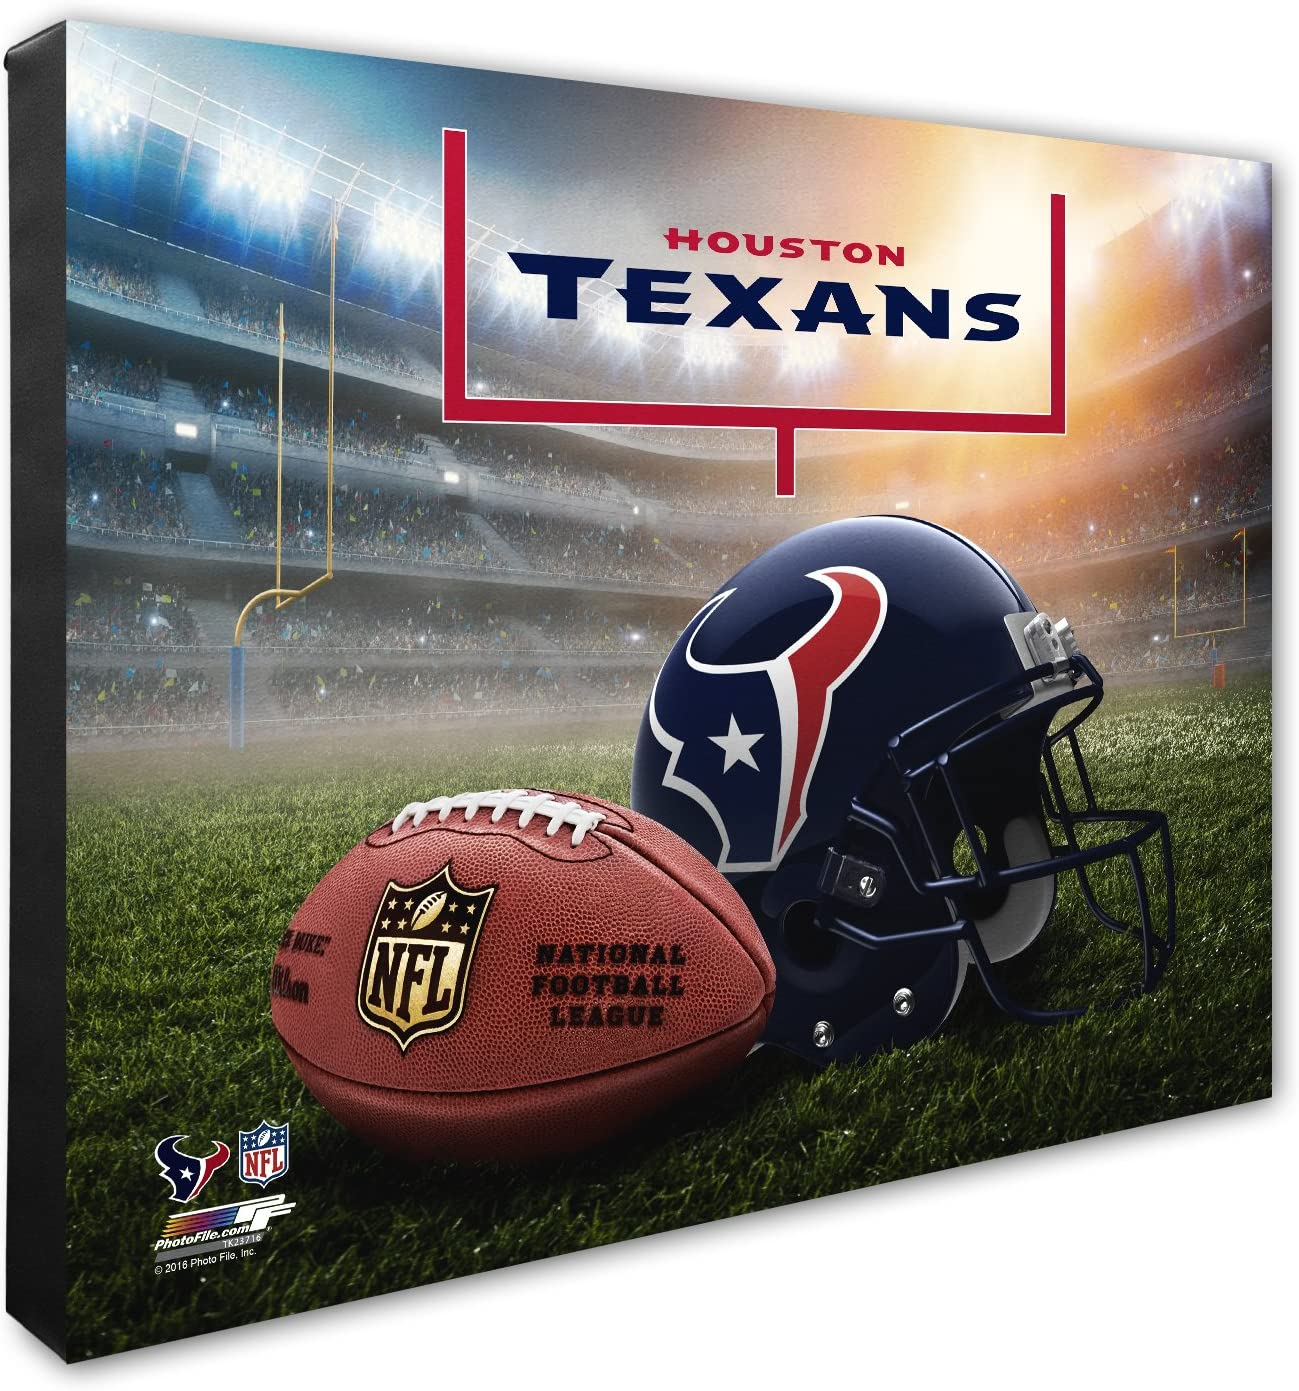 NFL Helmet /& Stadium High Resolution Canvas